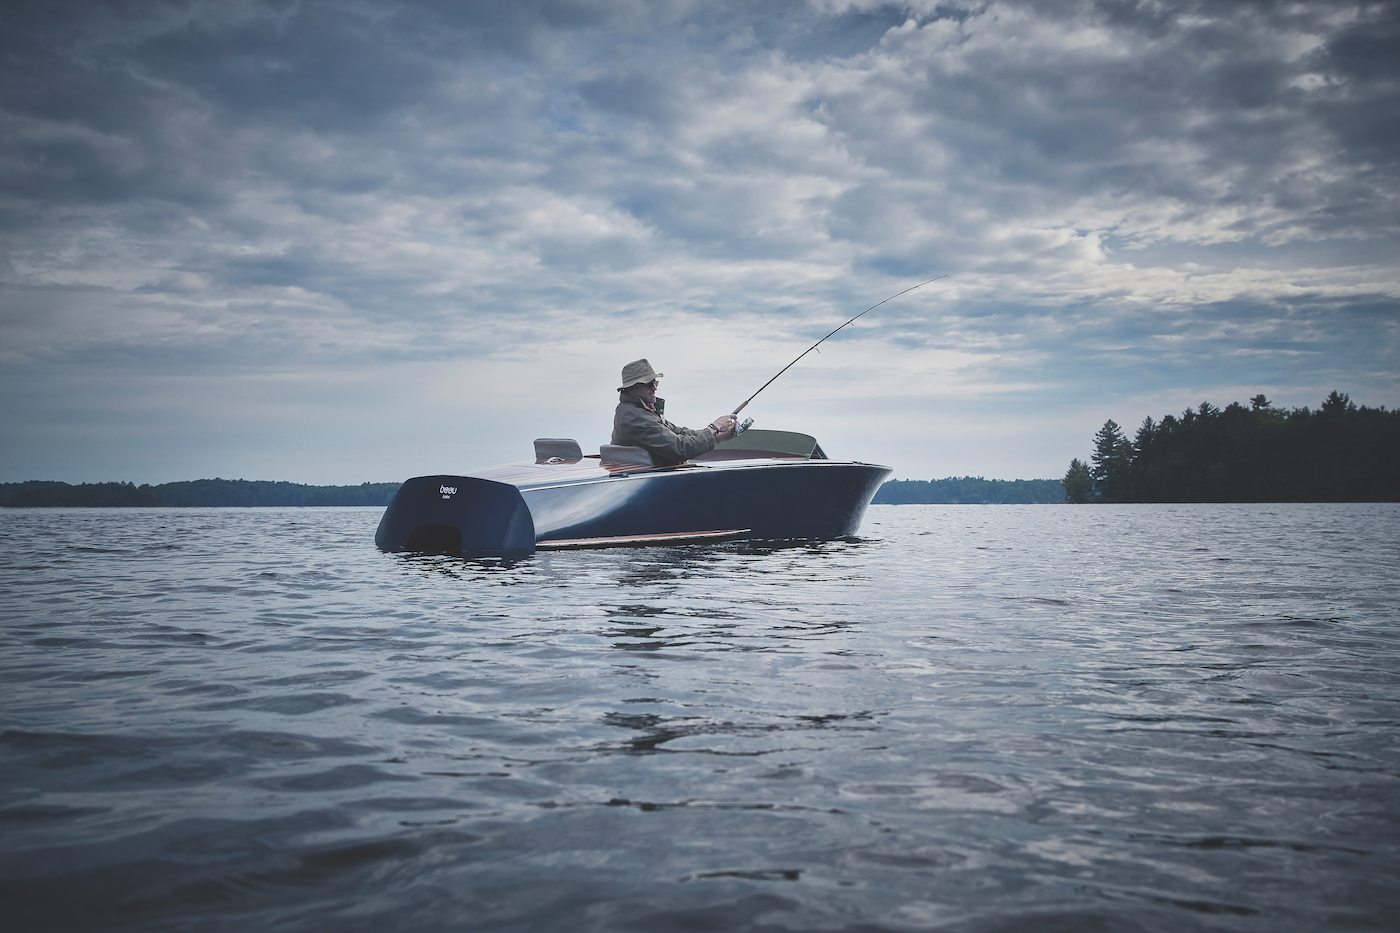 One of a kind luxury fishing experience with Beau Lake pedal boats - Photo credit Beau Lake